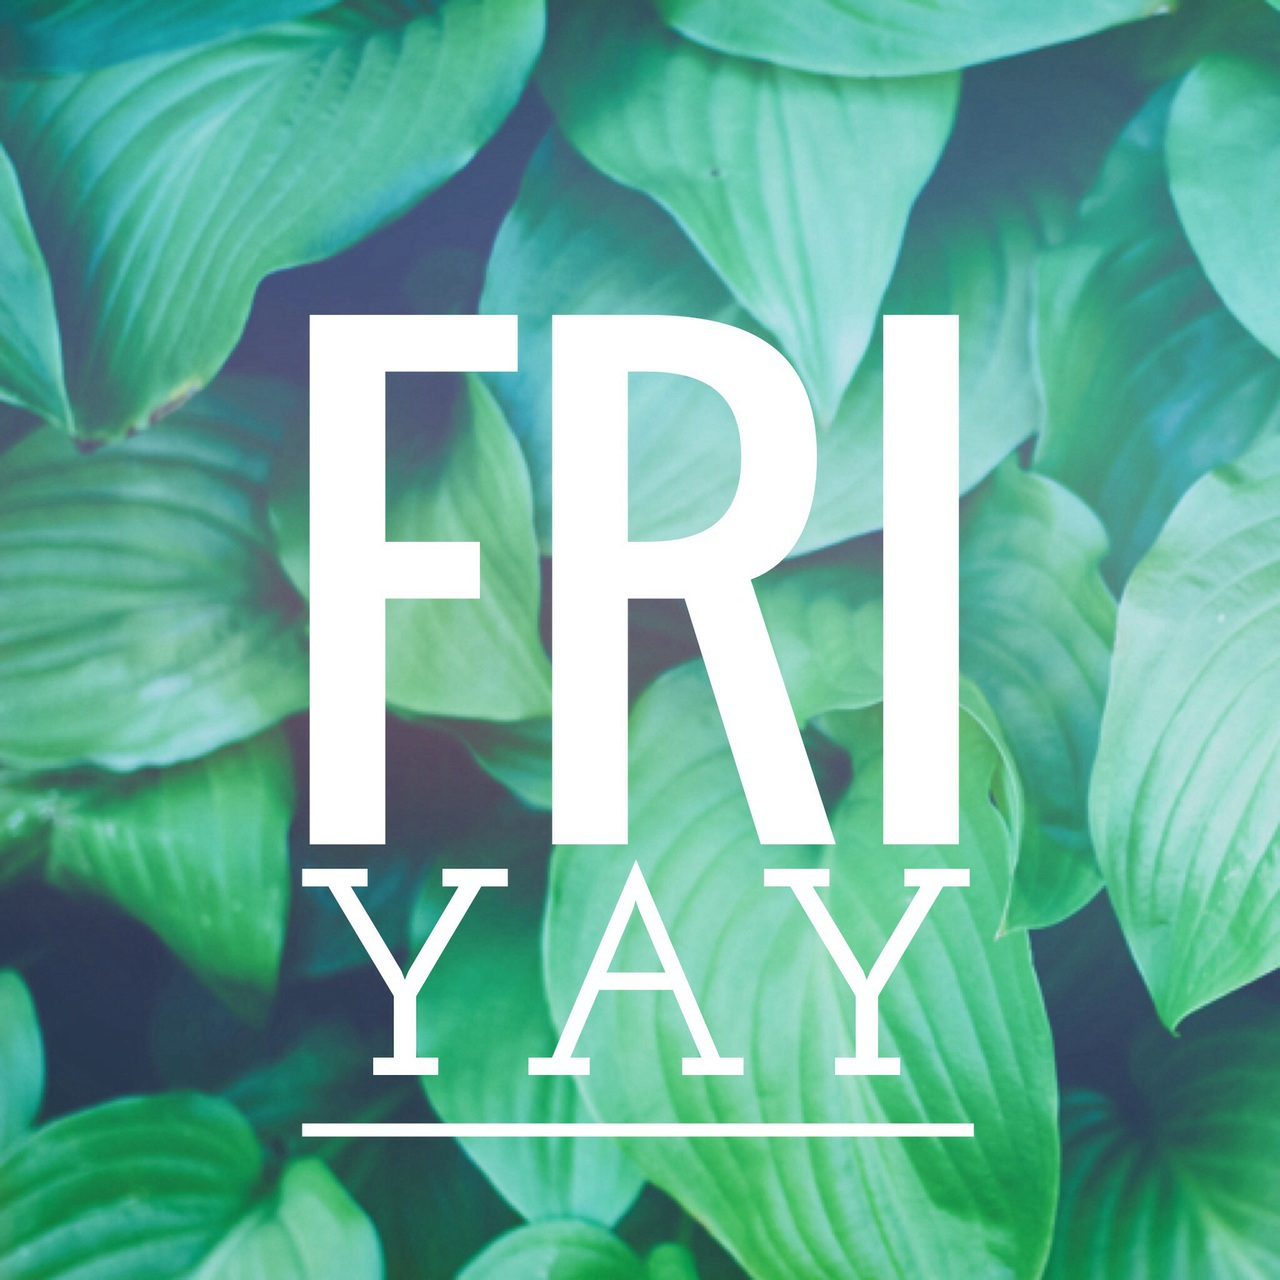 app, background, easel, font, friday, green, greenery, plant, qotd, quote, quotes, sayings, text, typography, wallpaper, we heart it, words, yay, Photo Editor, friyay, fri yay, easel app